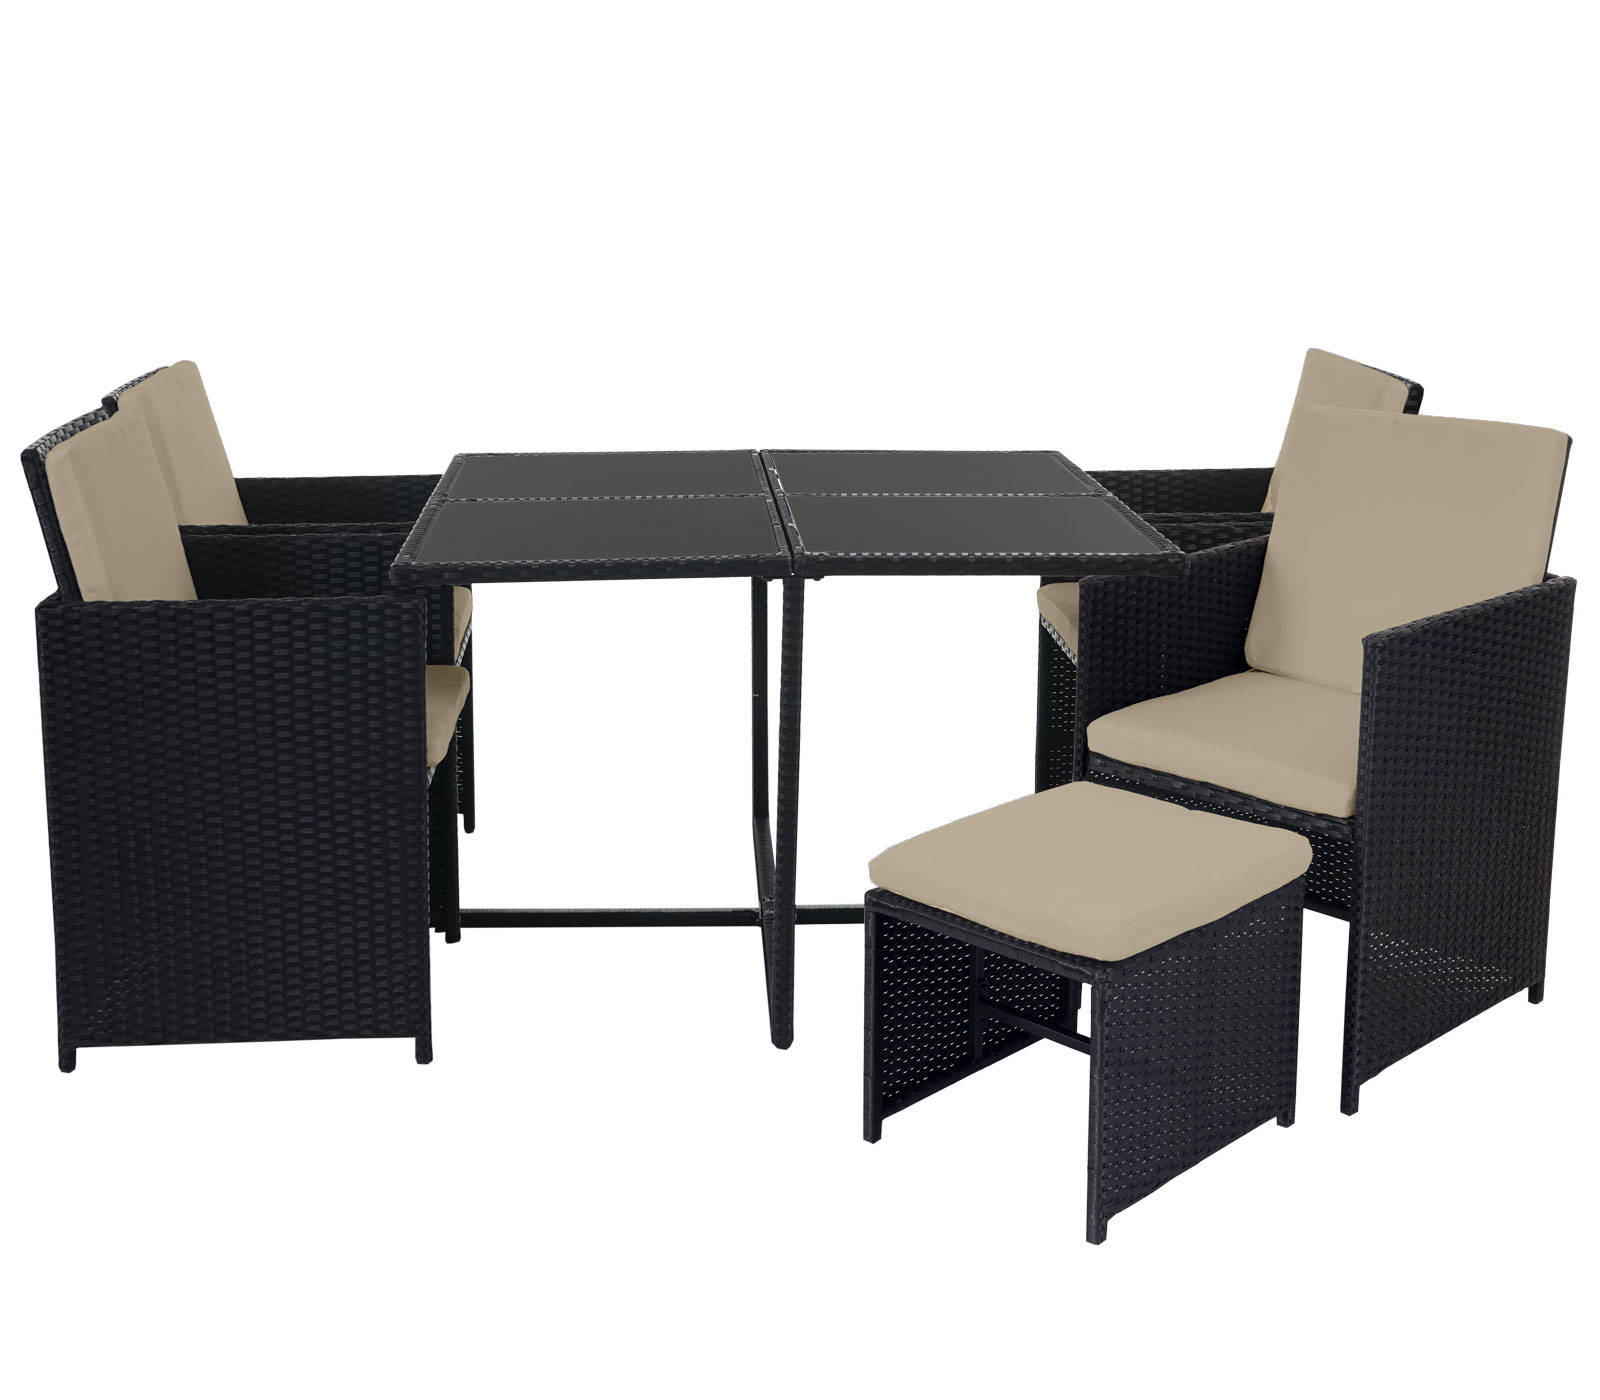 poly rattan garten garnitur lounge set sitzgruppe 4 st hle schwarz kissen beige garten. Black Bedroom Furniture Sets. Home Design Ideas